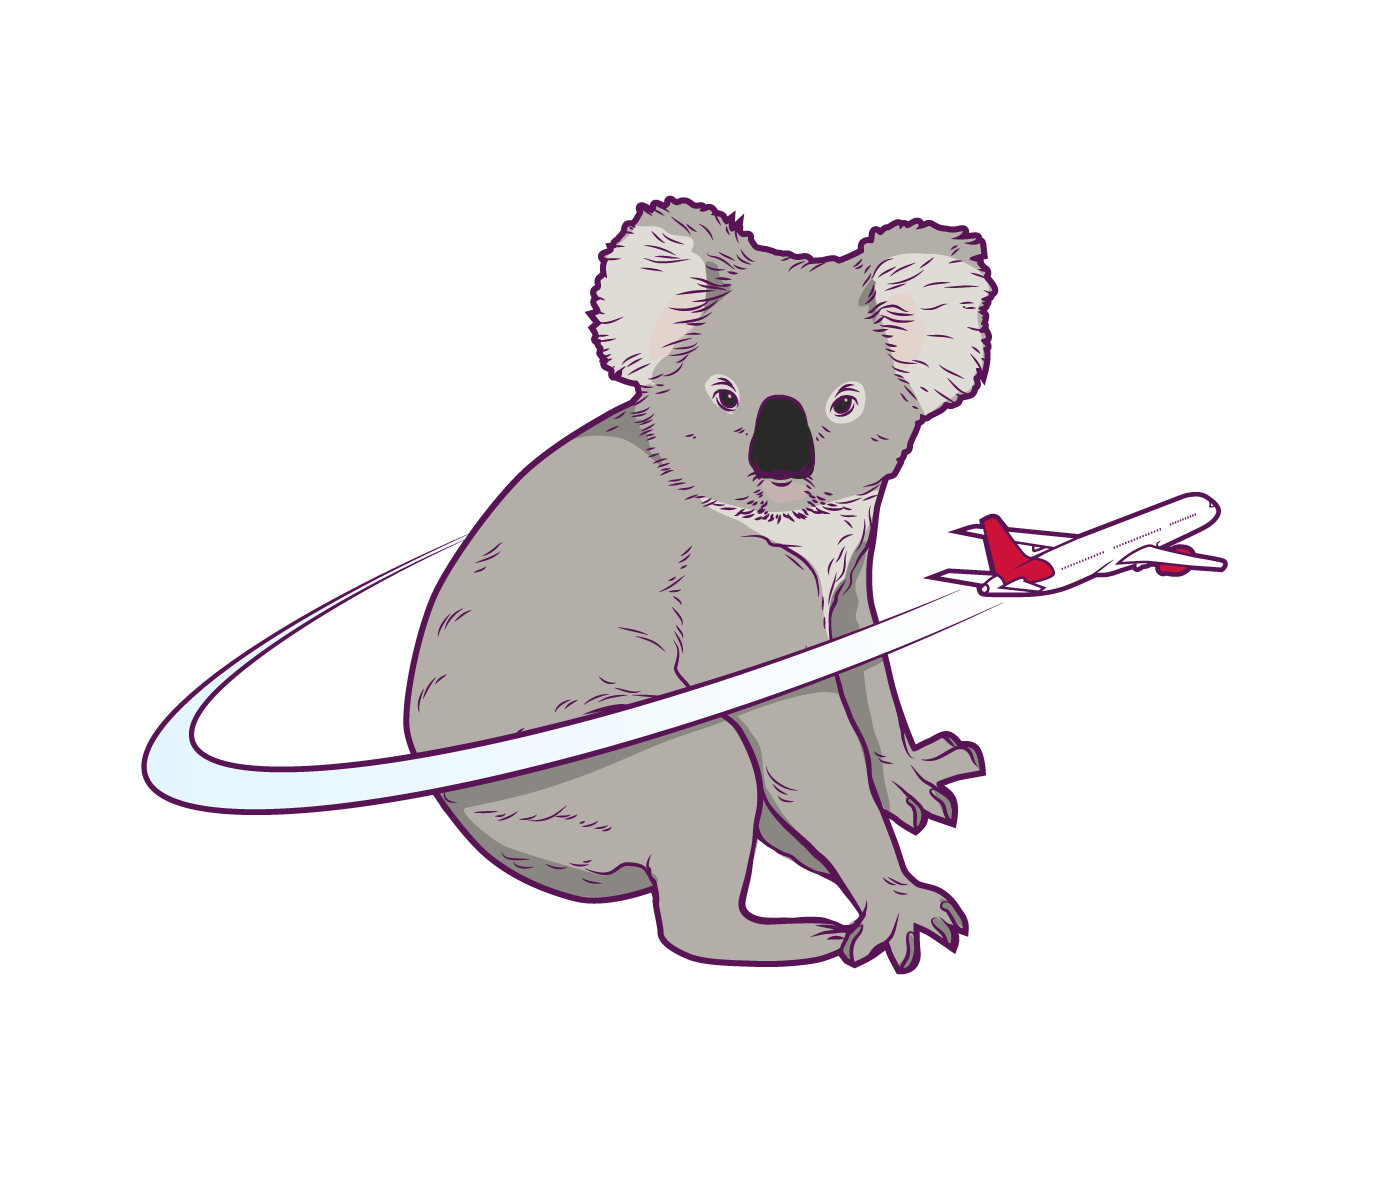 Virgin Infographic detail, with Koala and airplane